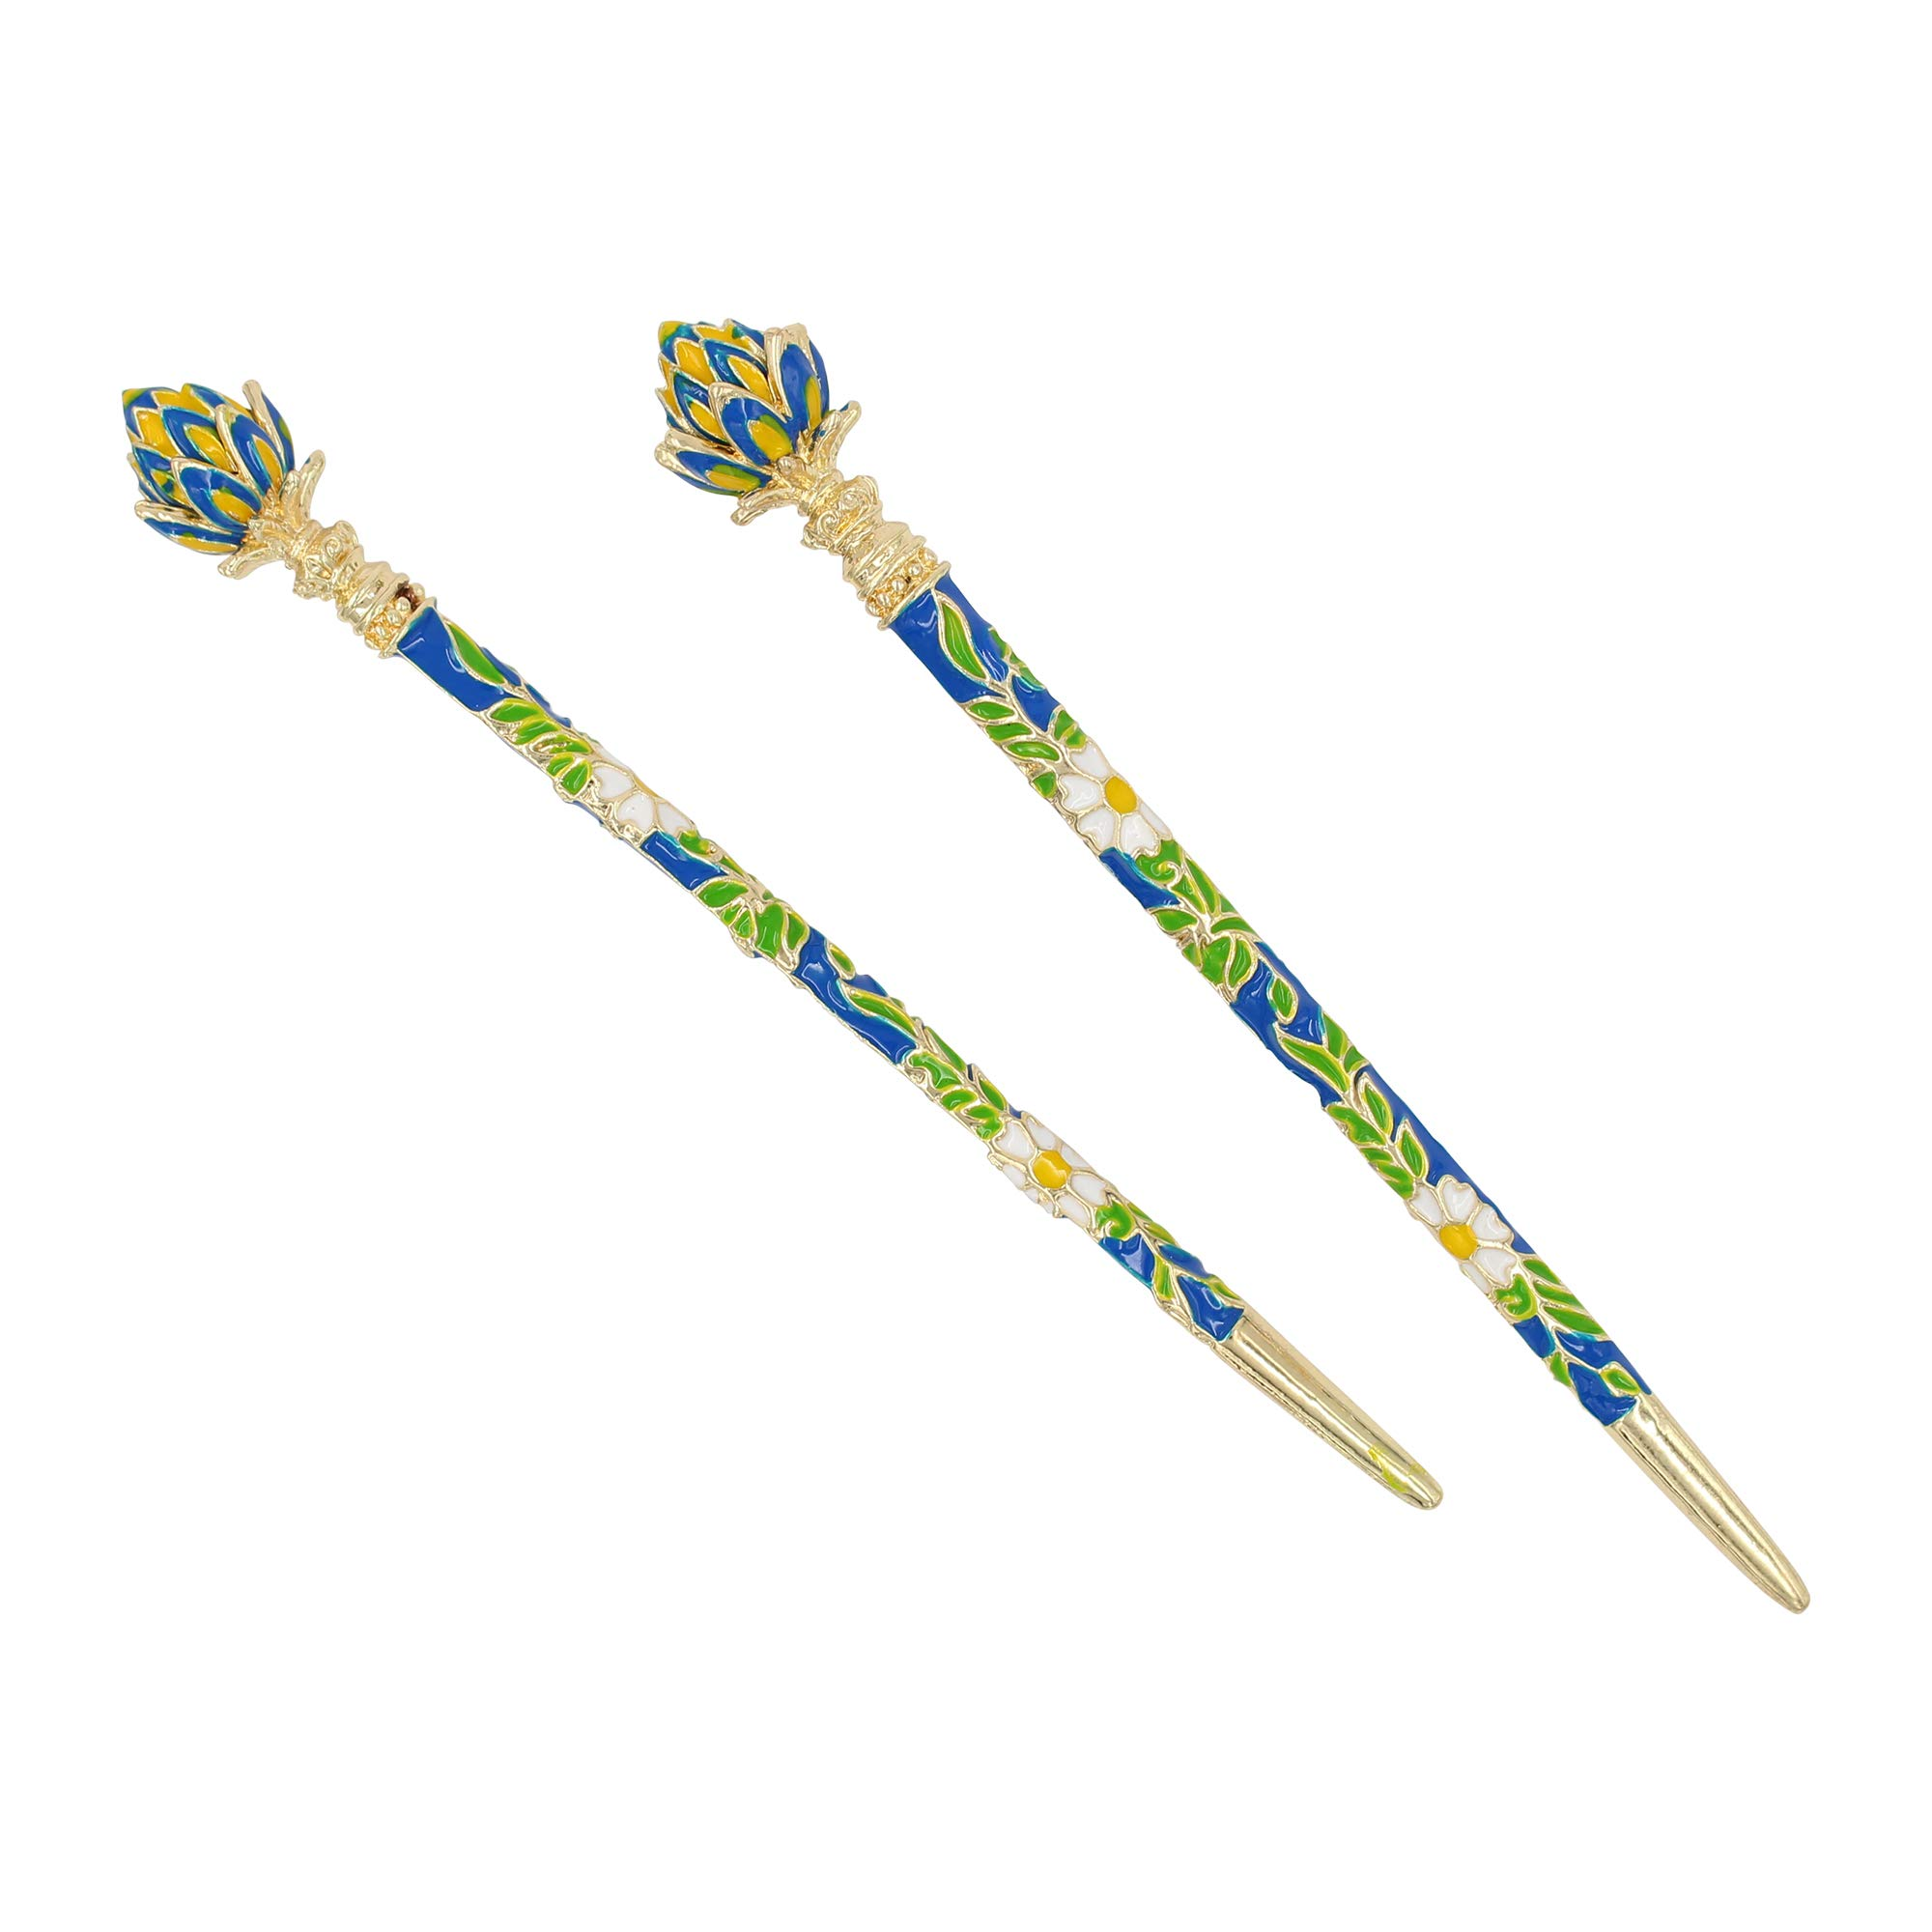 Real Sic Fashion & Lifestyle 2 Pic Hair Decor Chinese Traditional Style Hair Sticks Shawl Pins Picks Pics Forks for Women Girls Hair Updo Making Accessory with Lotus (Blue)